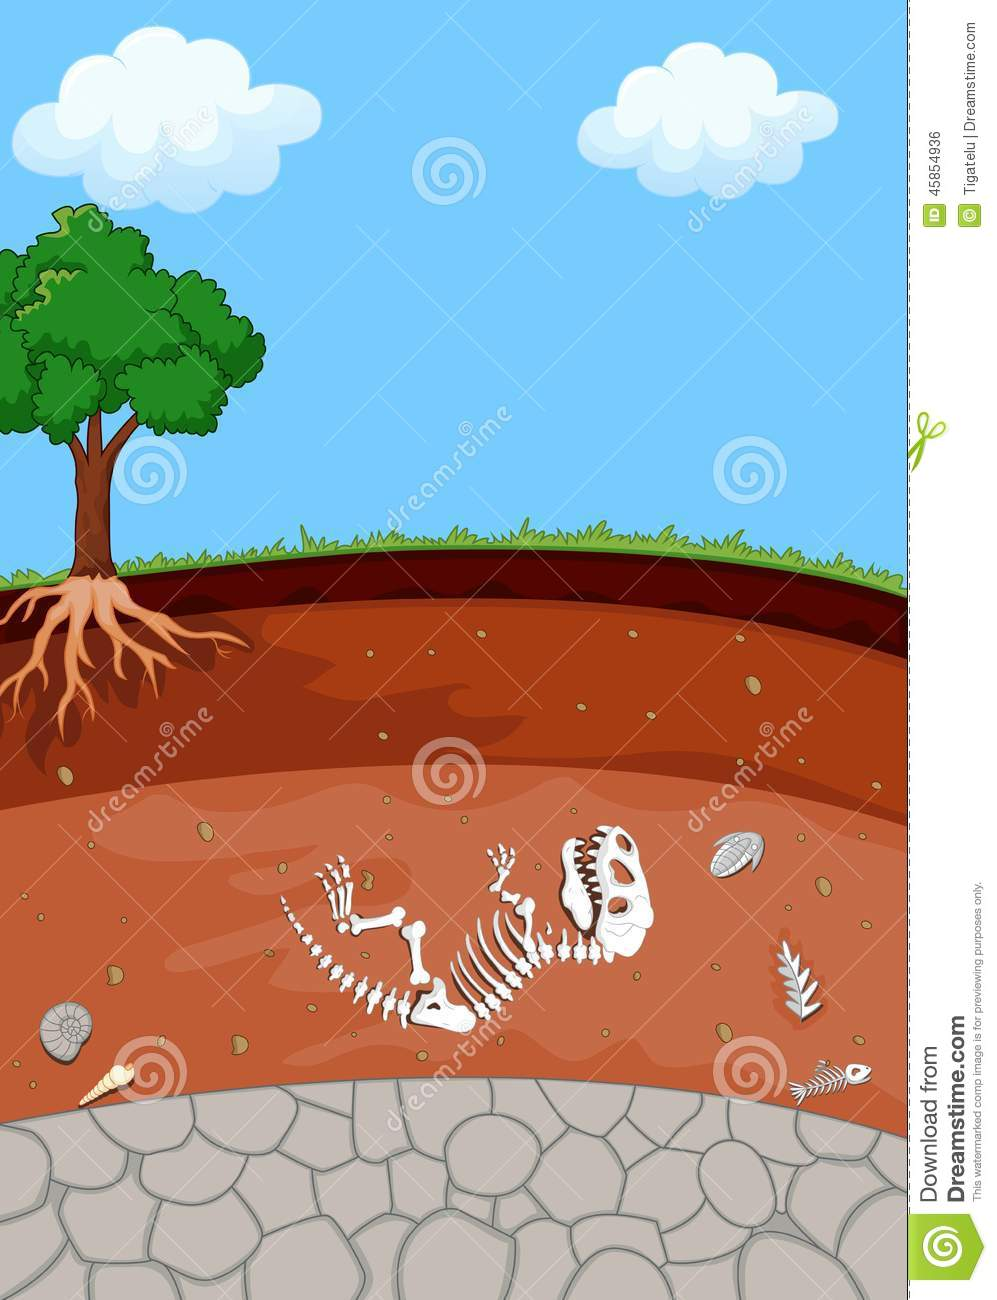 Soil layer clipart - Clipground